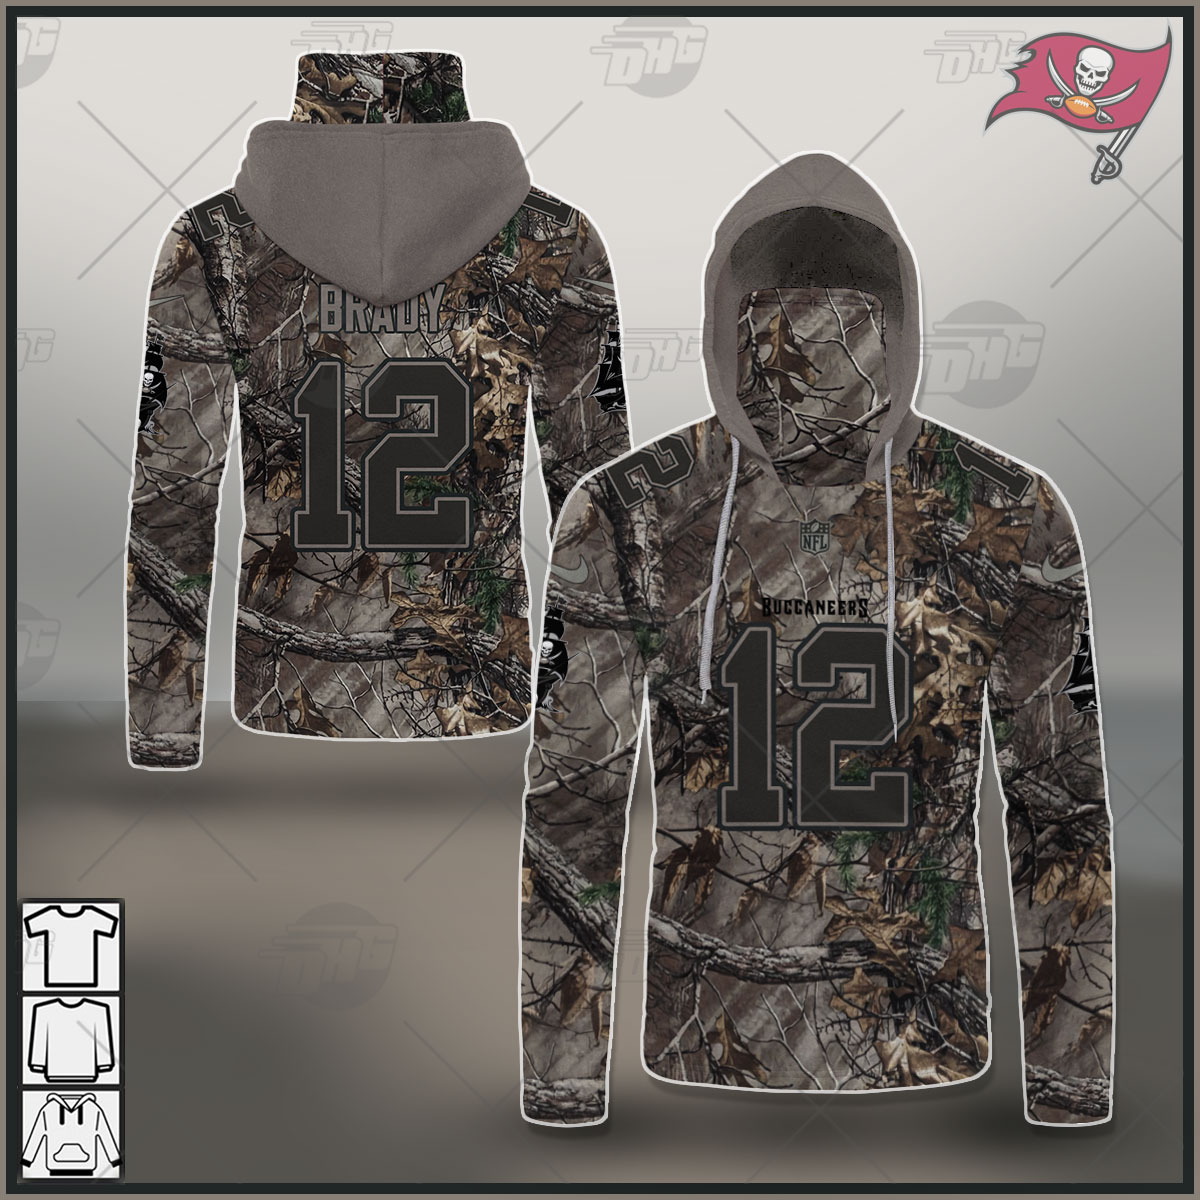 NFL Tampa Bay Buccaneers Camo Real Tree Jersey Tom Brady Clothes Hunting Gear Personalized